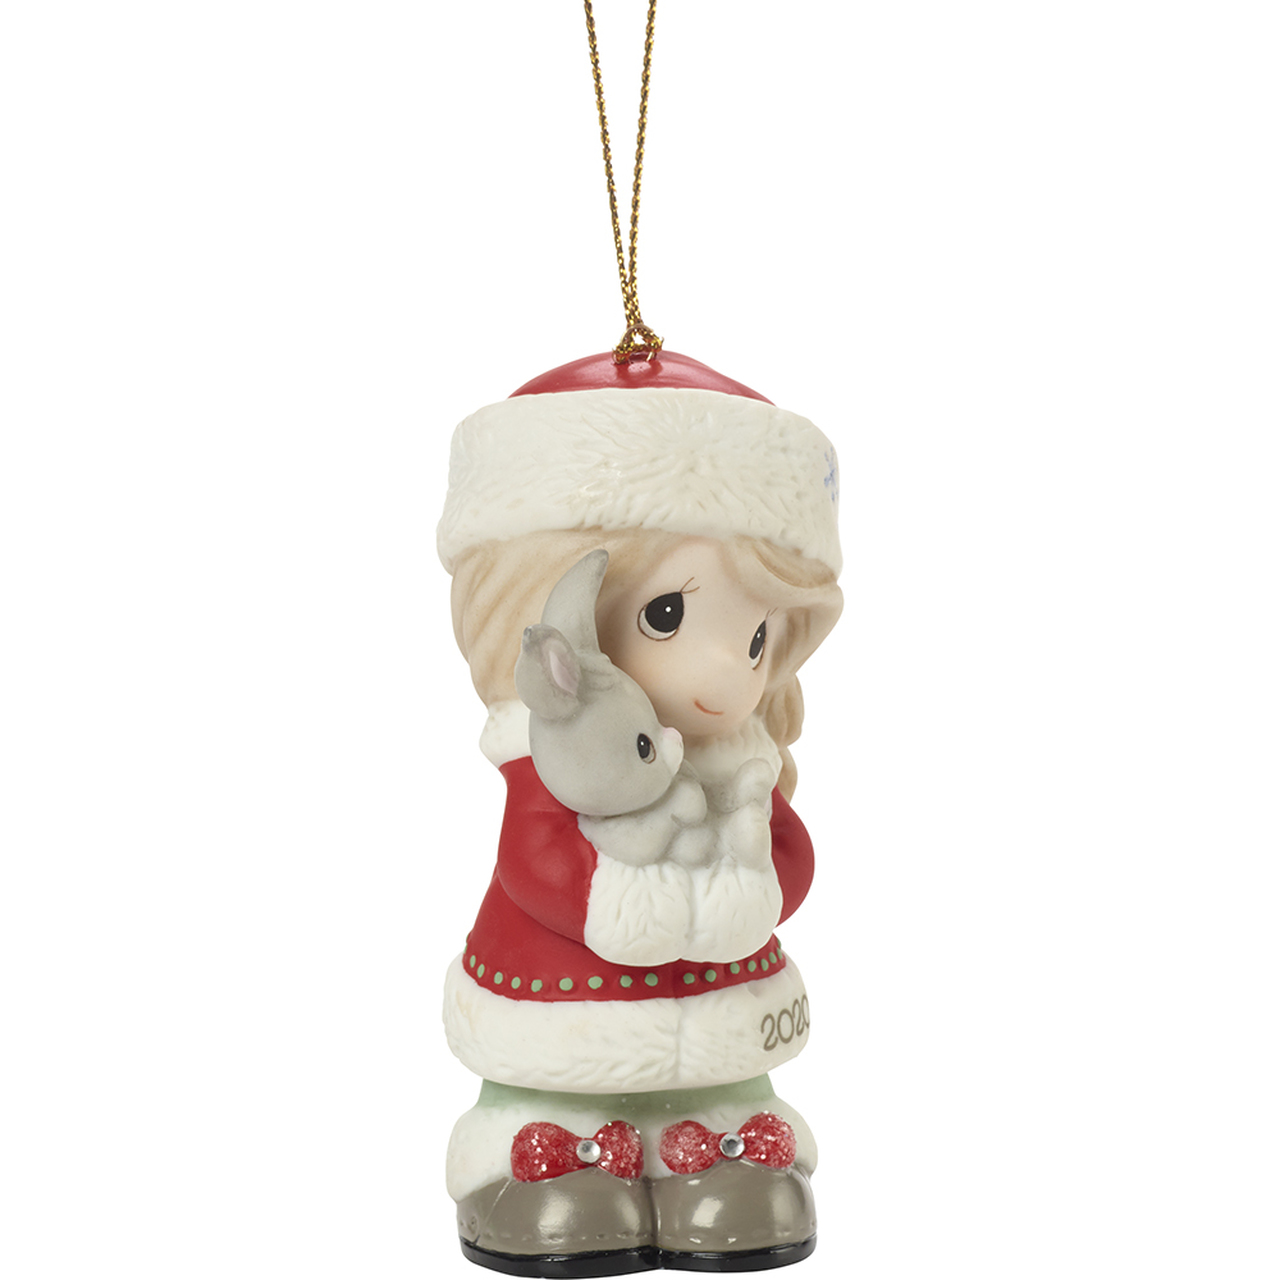 Every Bunny Loves A Christmas Hug - Precious Moments 2020 dated girl ornament